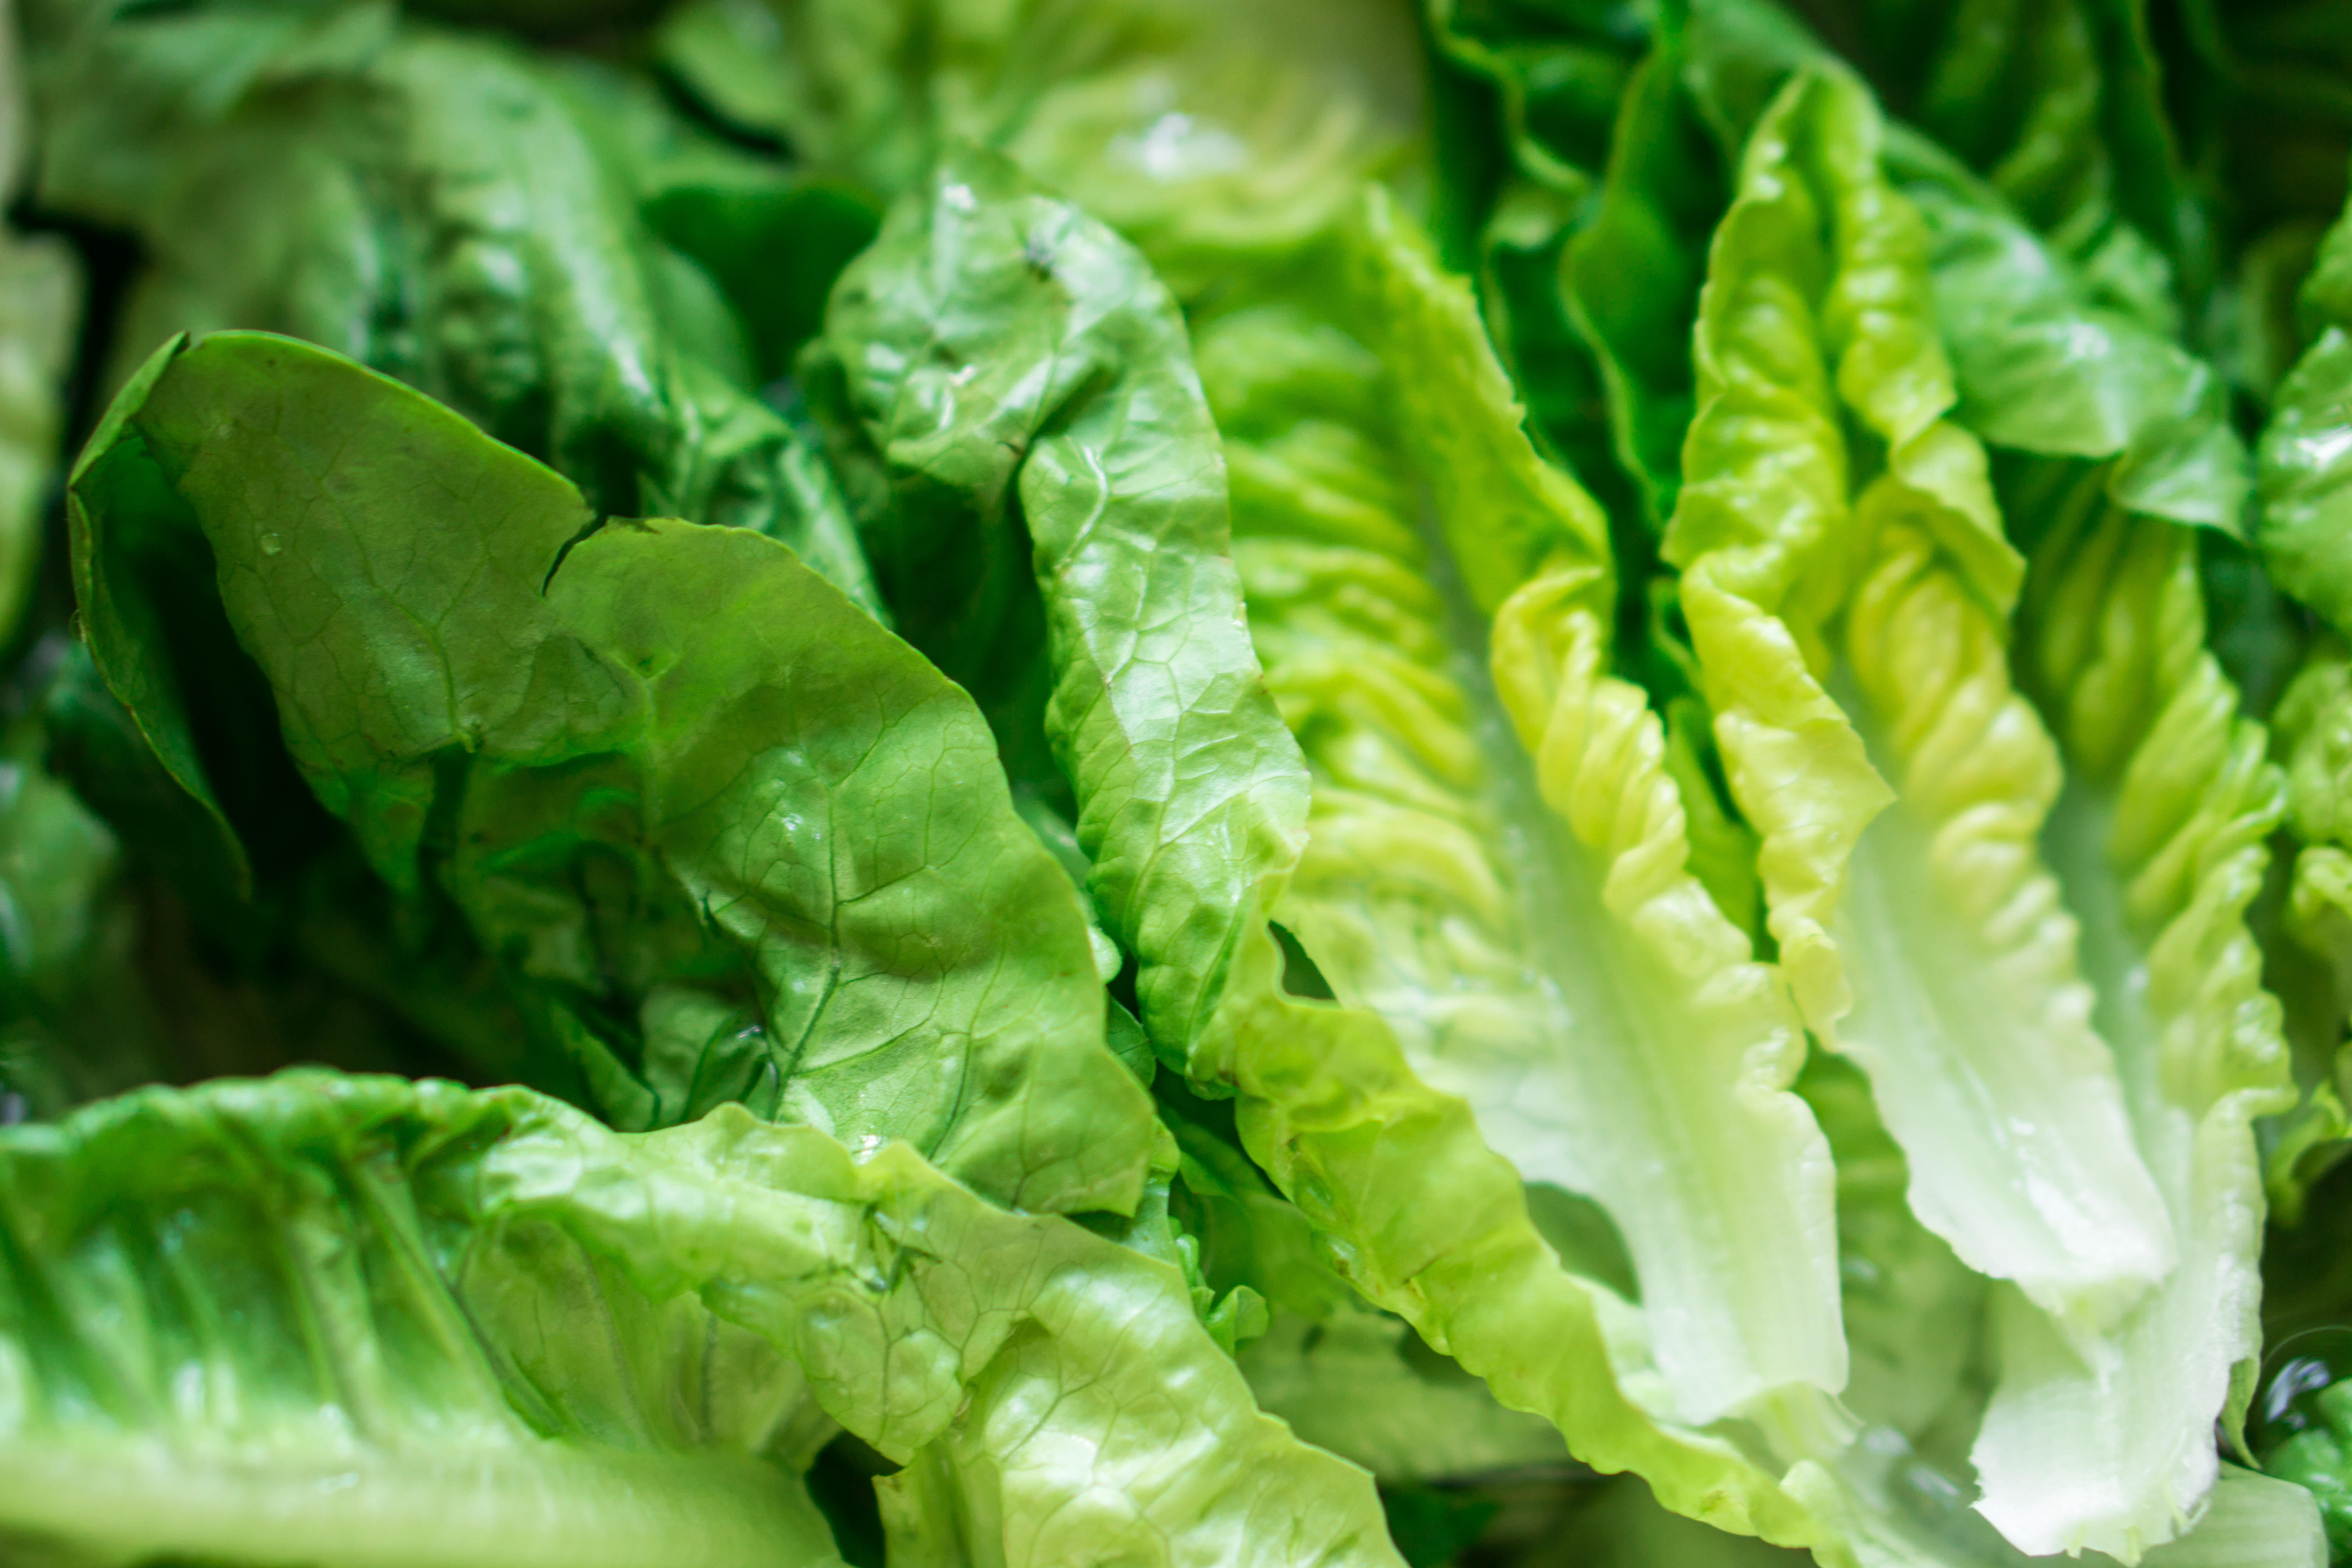 In Wake of Romaine Lettuce Recall, FoodLogiQ Shares Thoughts on the Importance of Supply Chain Management and Food Traceability